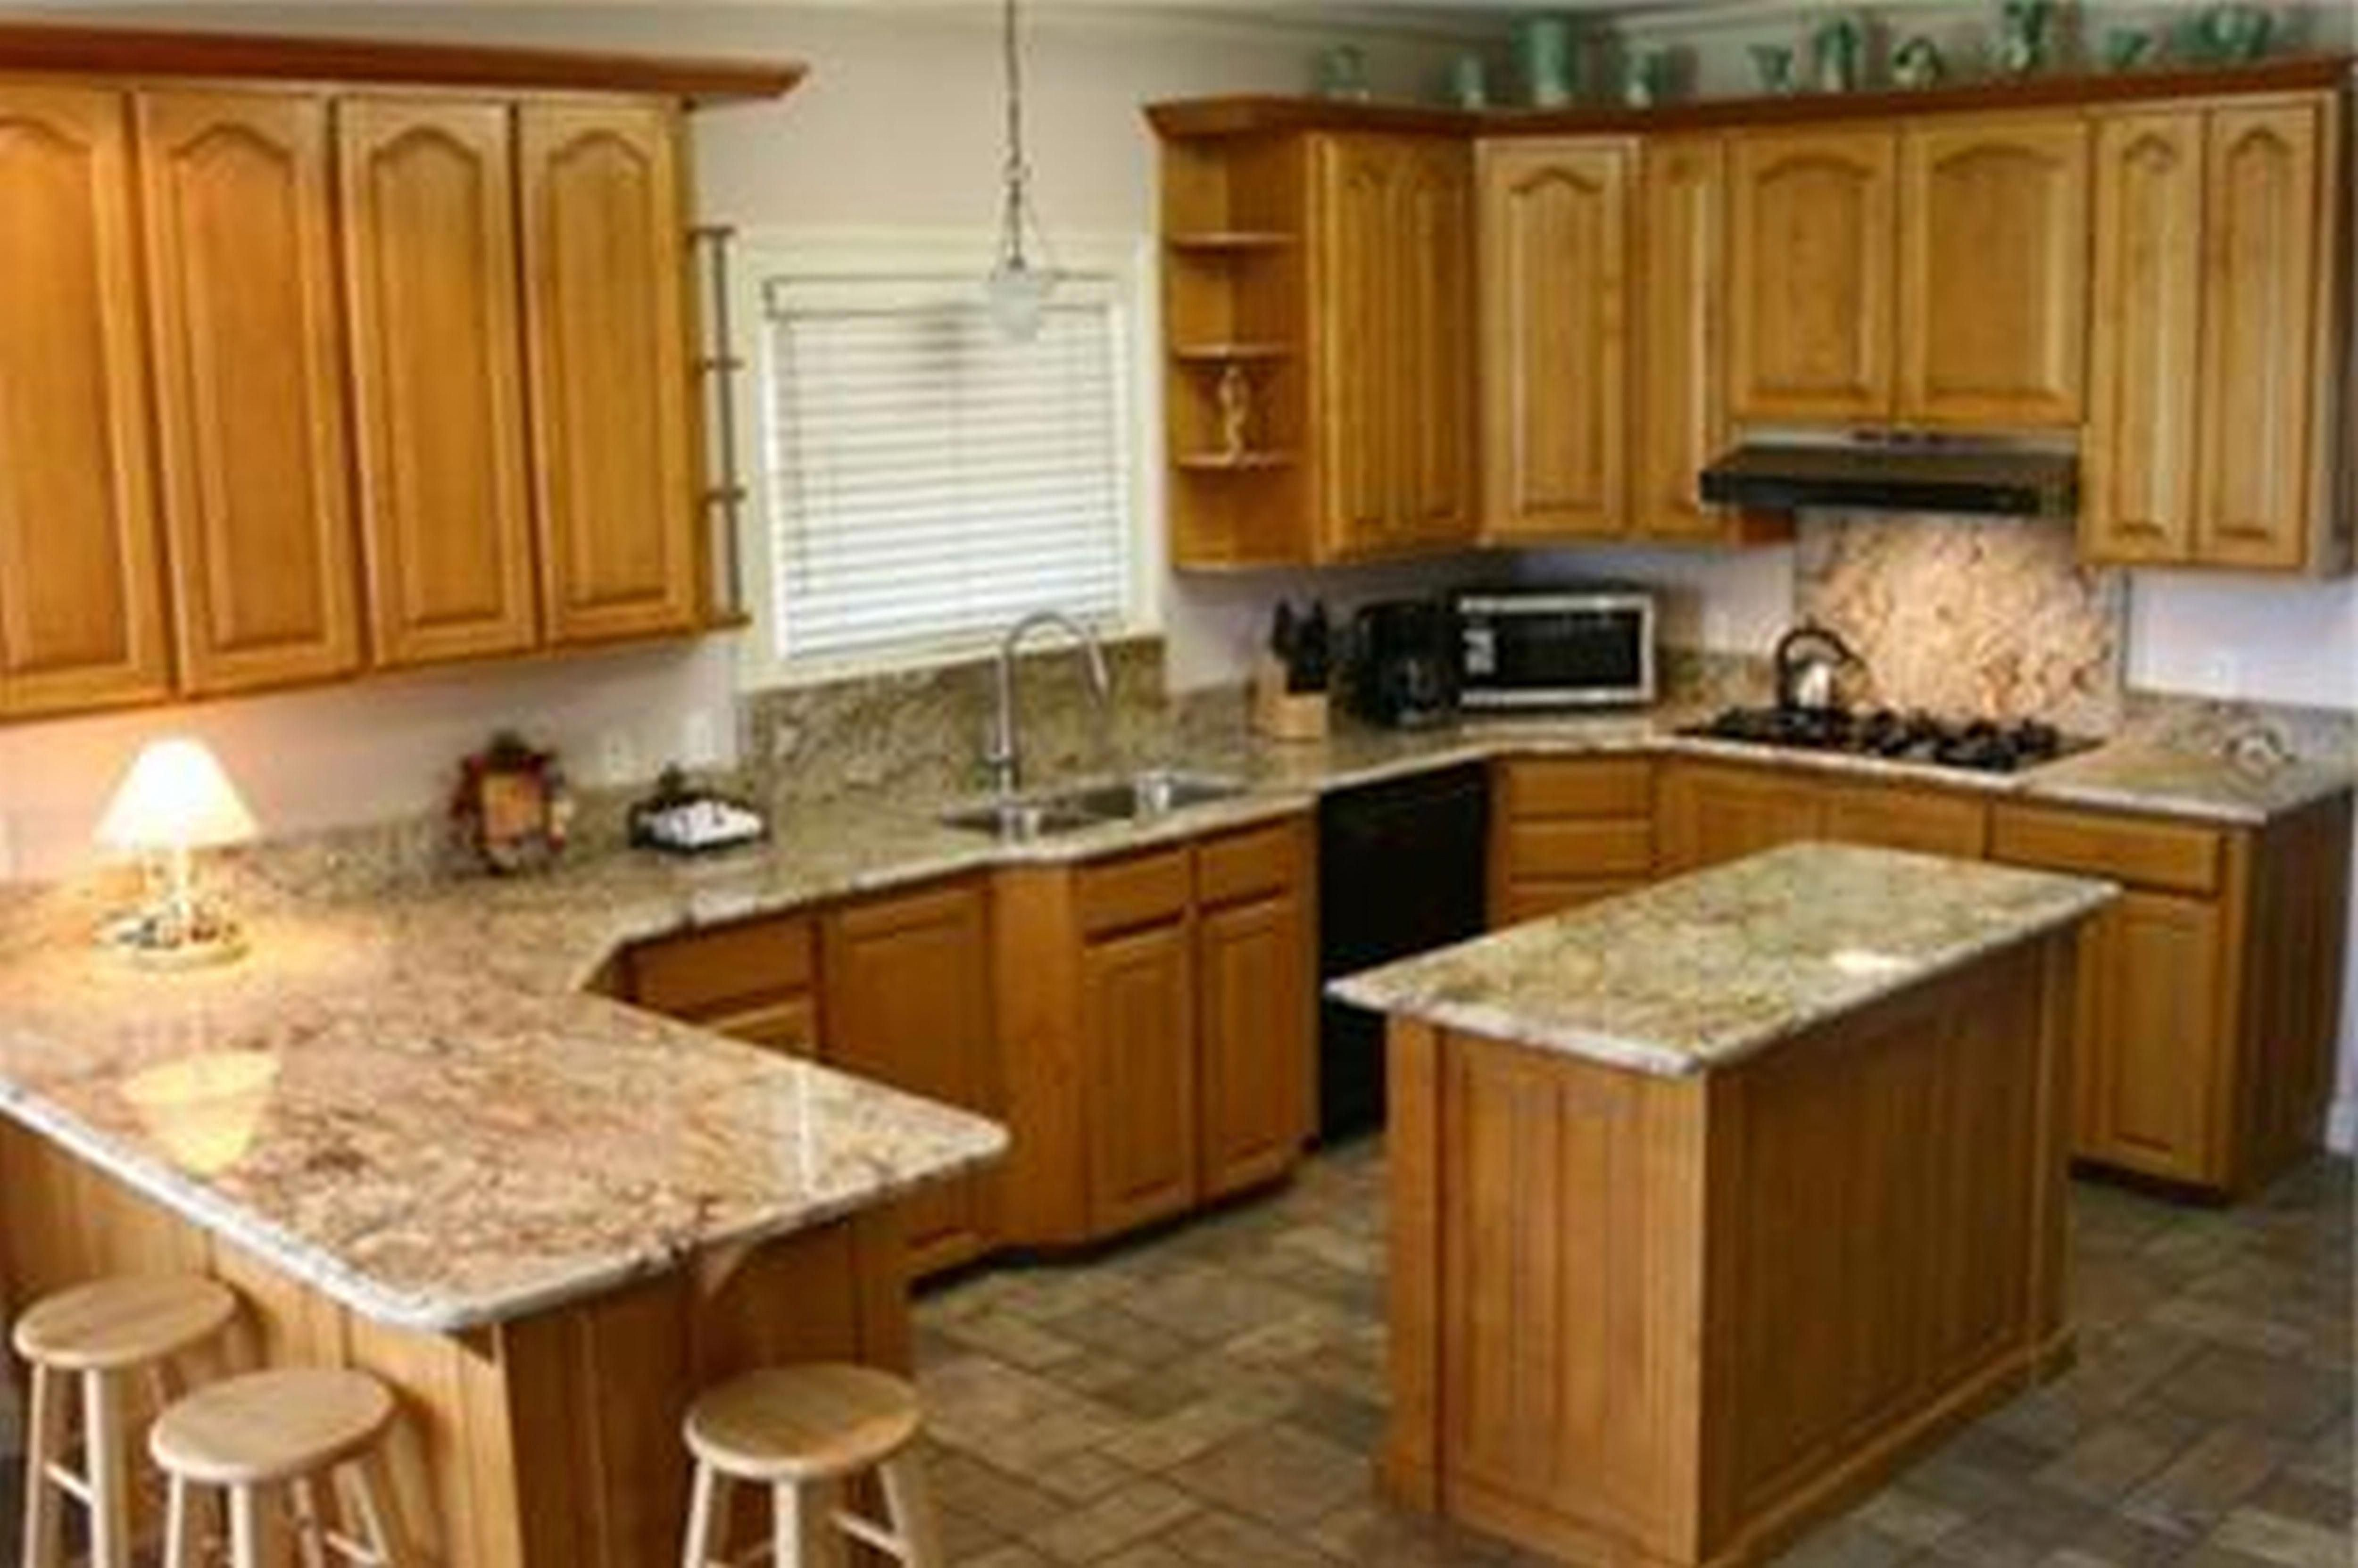 Why Not Try These Out For Details Kitchens Remodel Kitchen Cabinets And Countertops Kitchen Design Kitchen Renovation